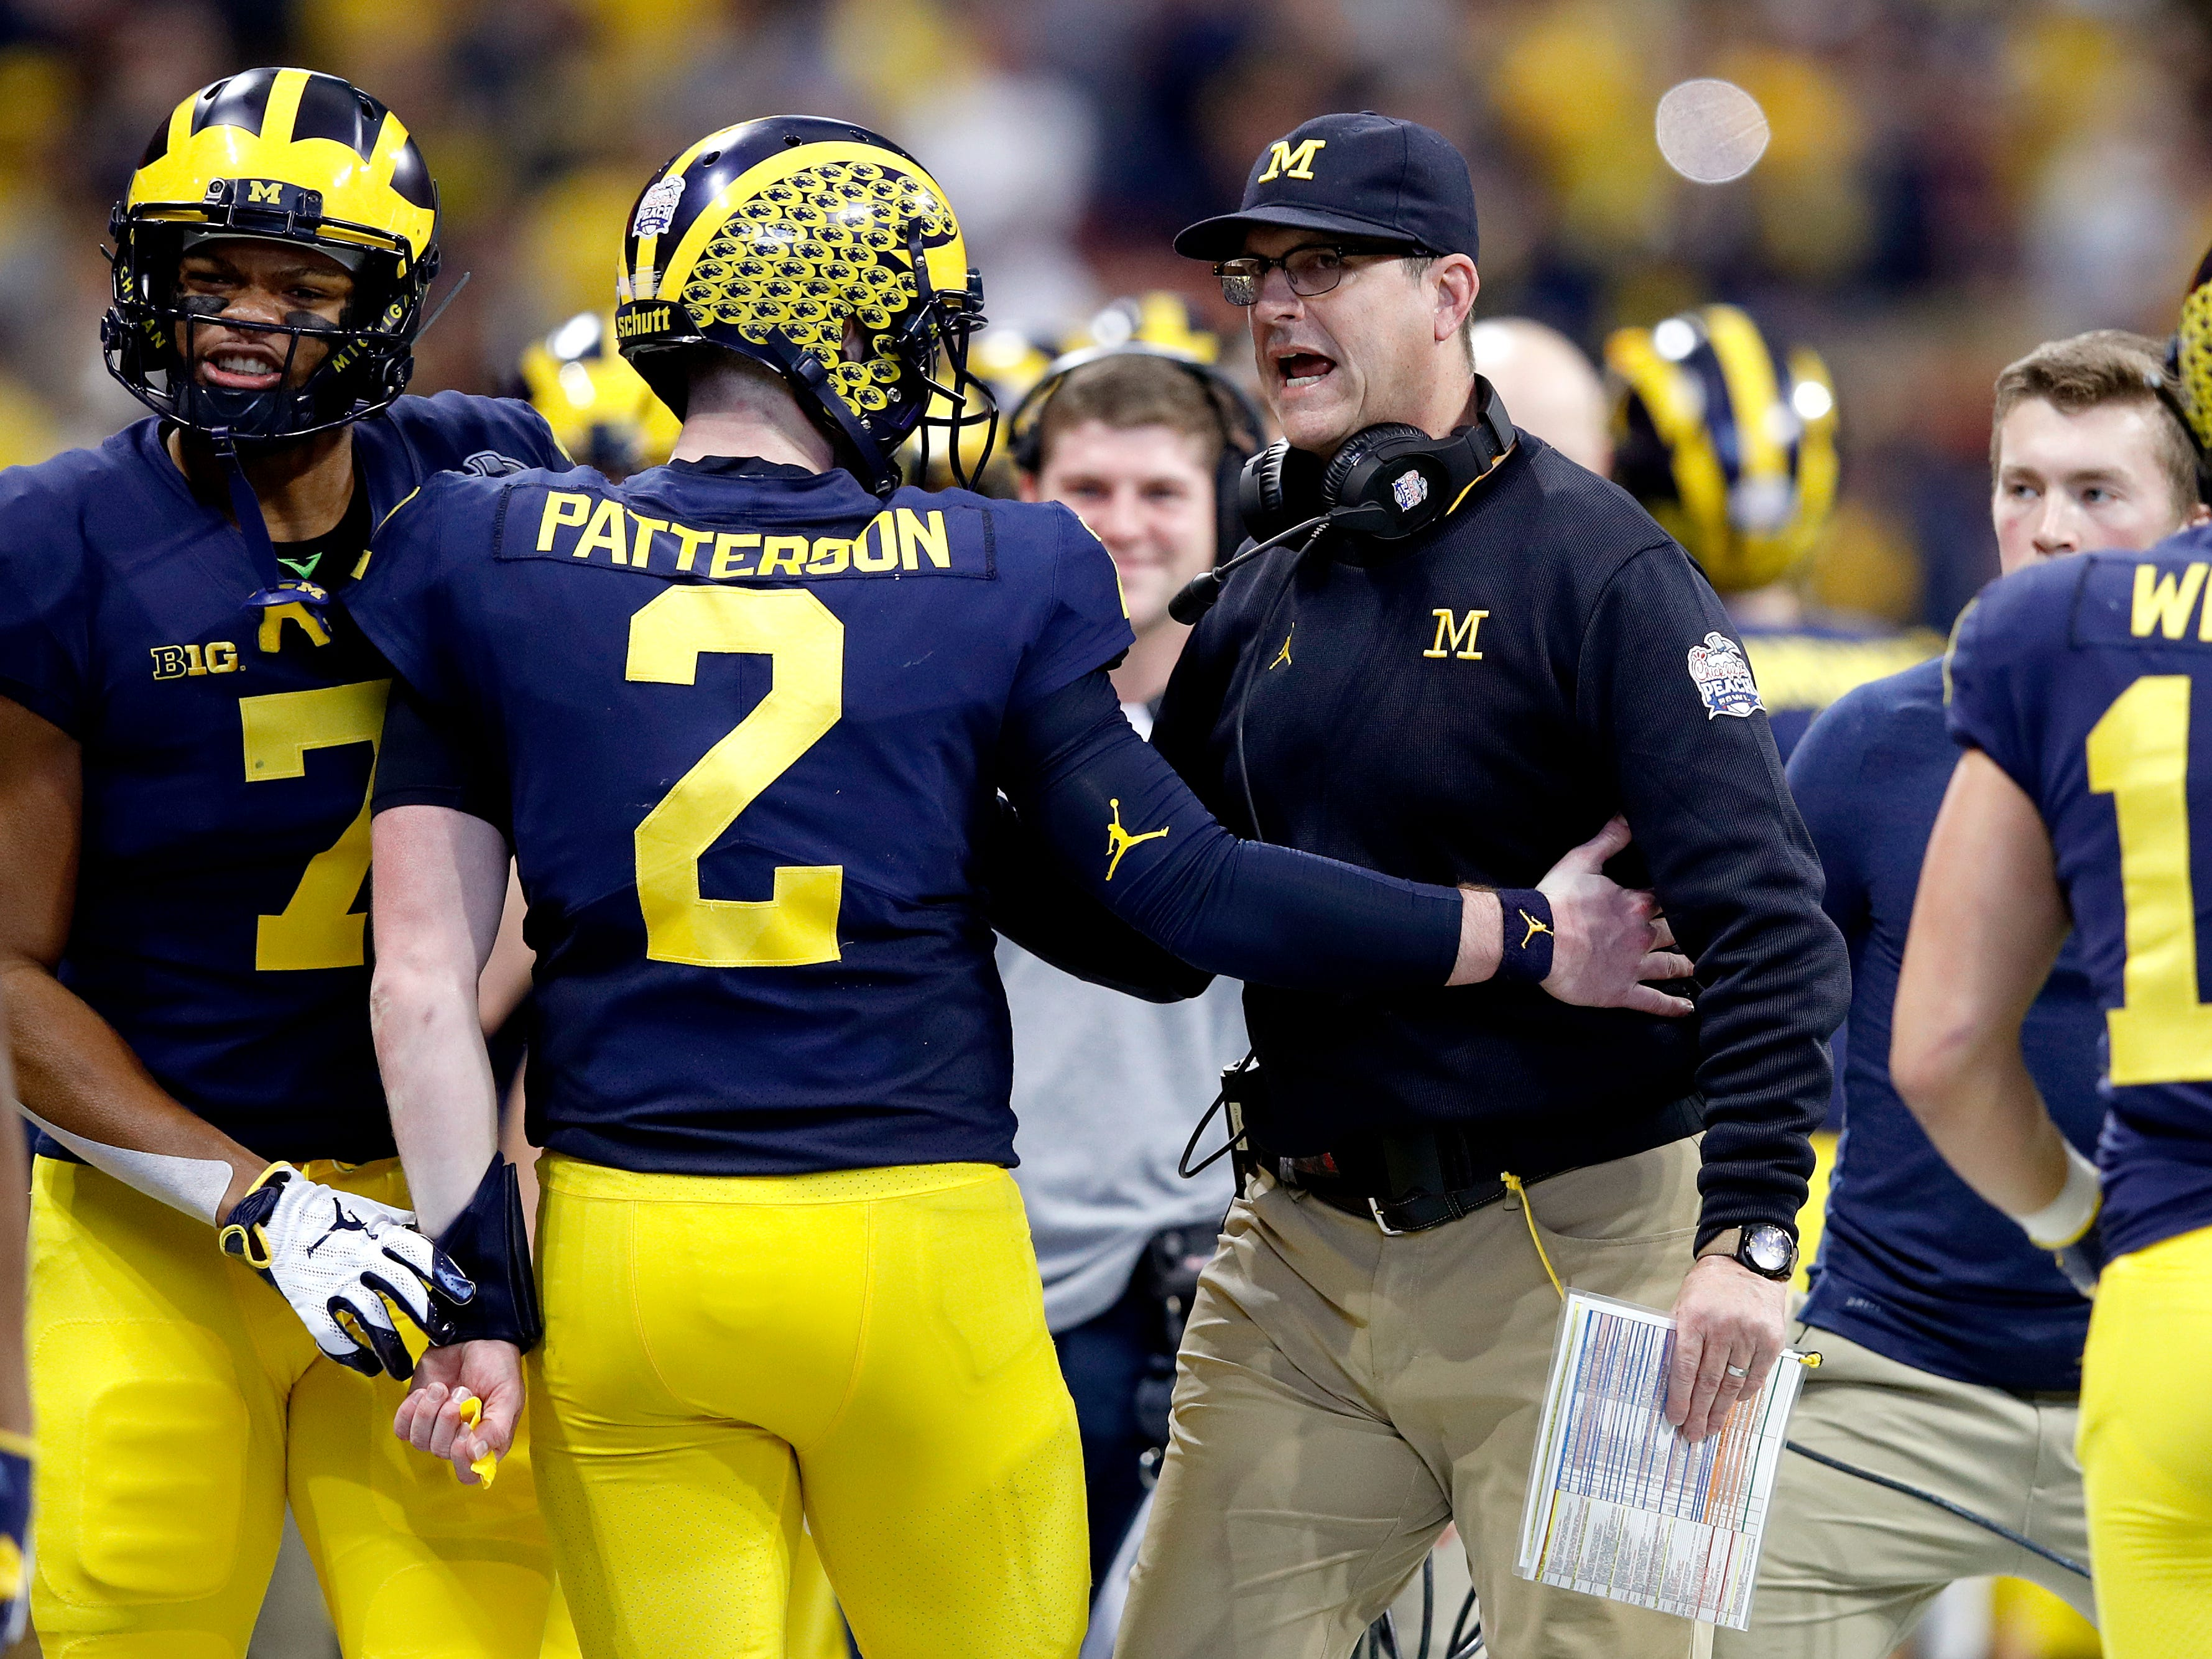 Michigan quarterback Shea Patterson  and coach Jim Harbaugh celebrate a touchdown against Florida during the Peach Bowl on Saturday, Dec. 29, 2018, in Atlanta.